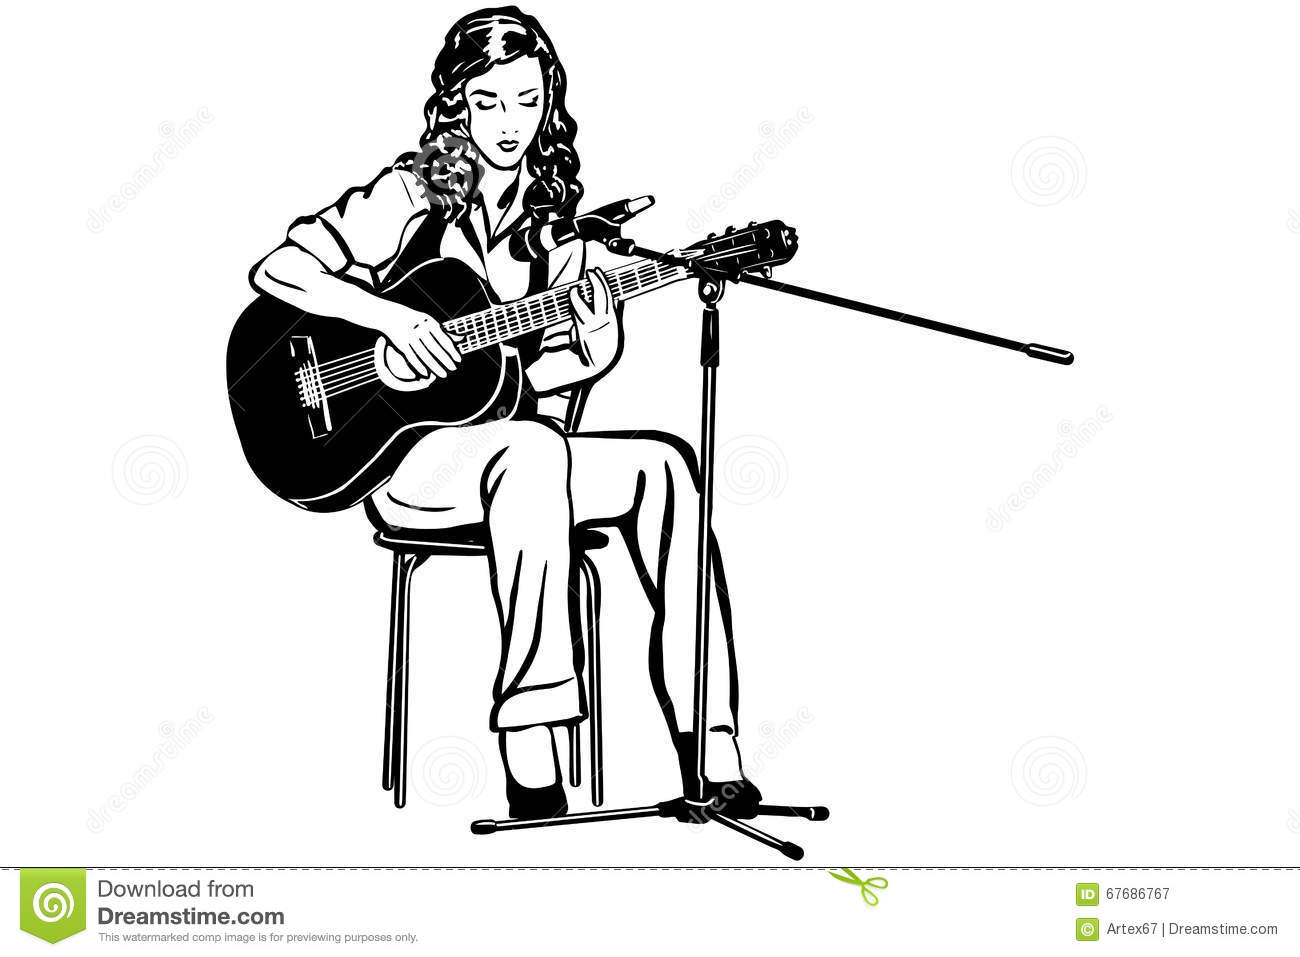 Black and white vector sketch of a girl playing the guitar